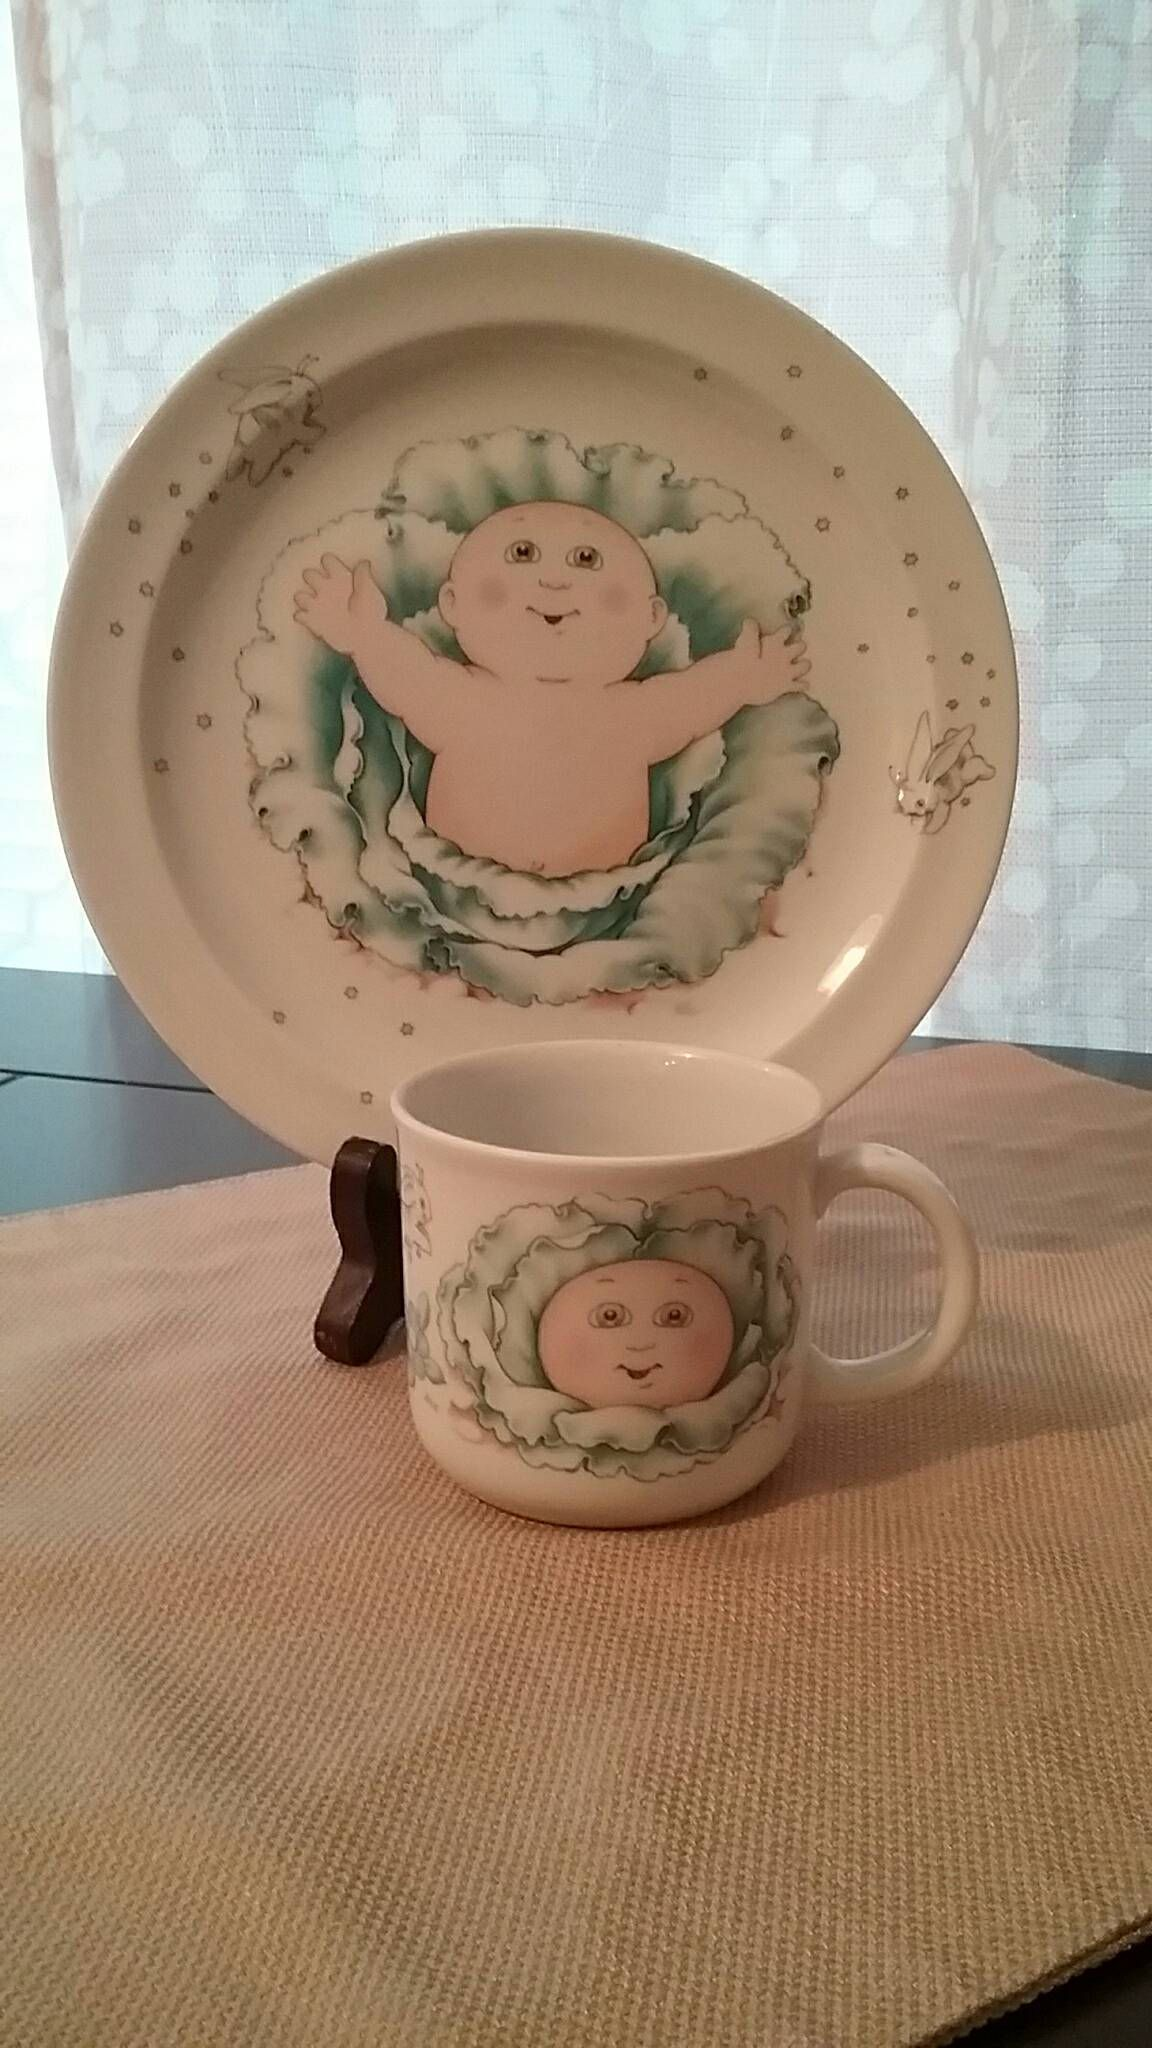 Excited To Share This Addition To My Etsy Shop 1984 Cabbage Patch Kids Royal Worcester Porcelain Cup And Plate Cabbage Patch Kids Cabbage Patch Porcelain Cup